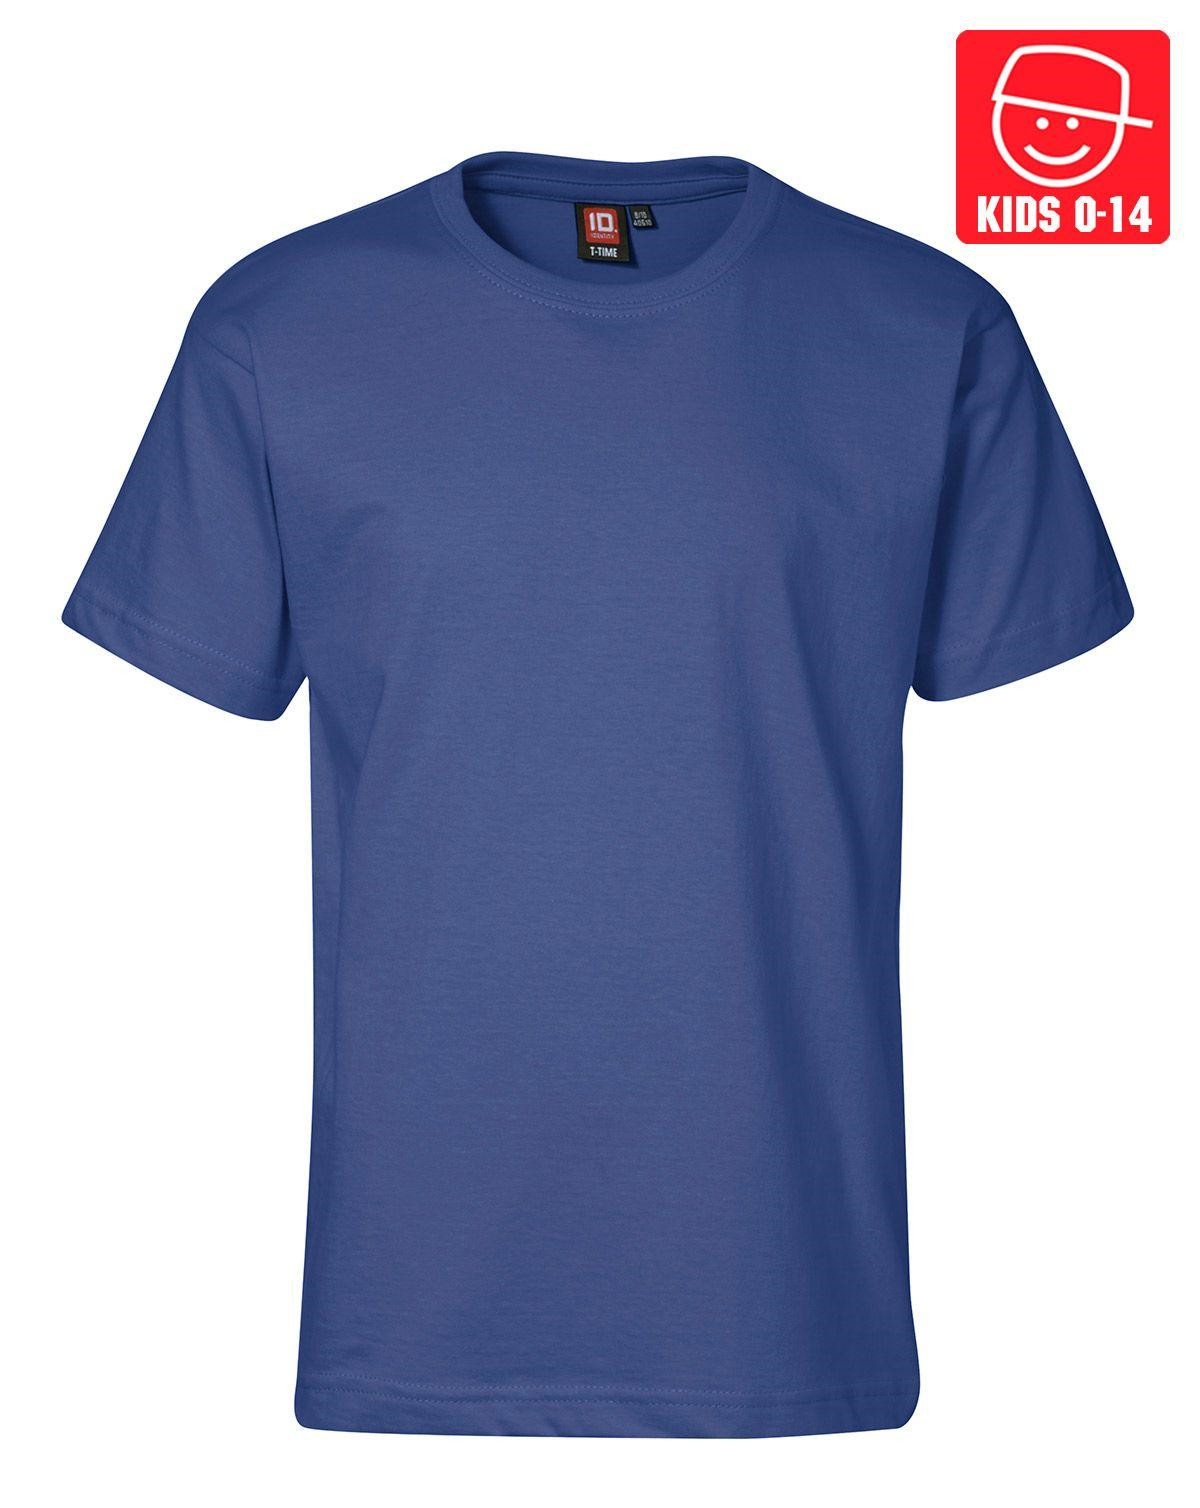 Image of   ID T-TIME T-shirt (Kongeblå, 128)